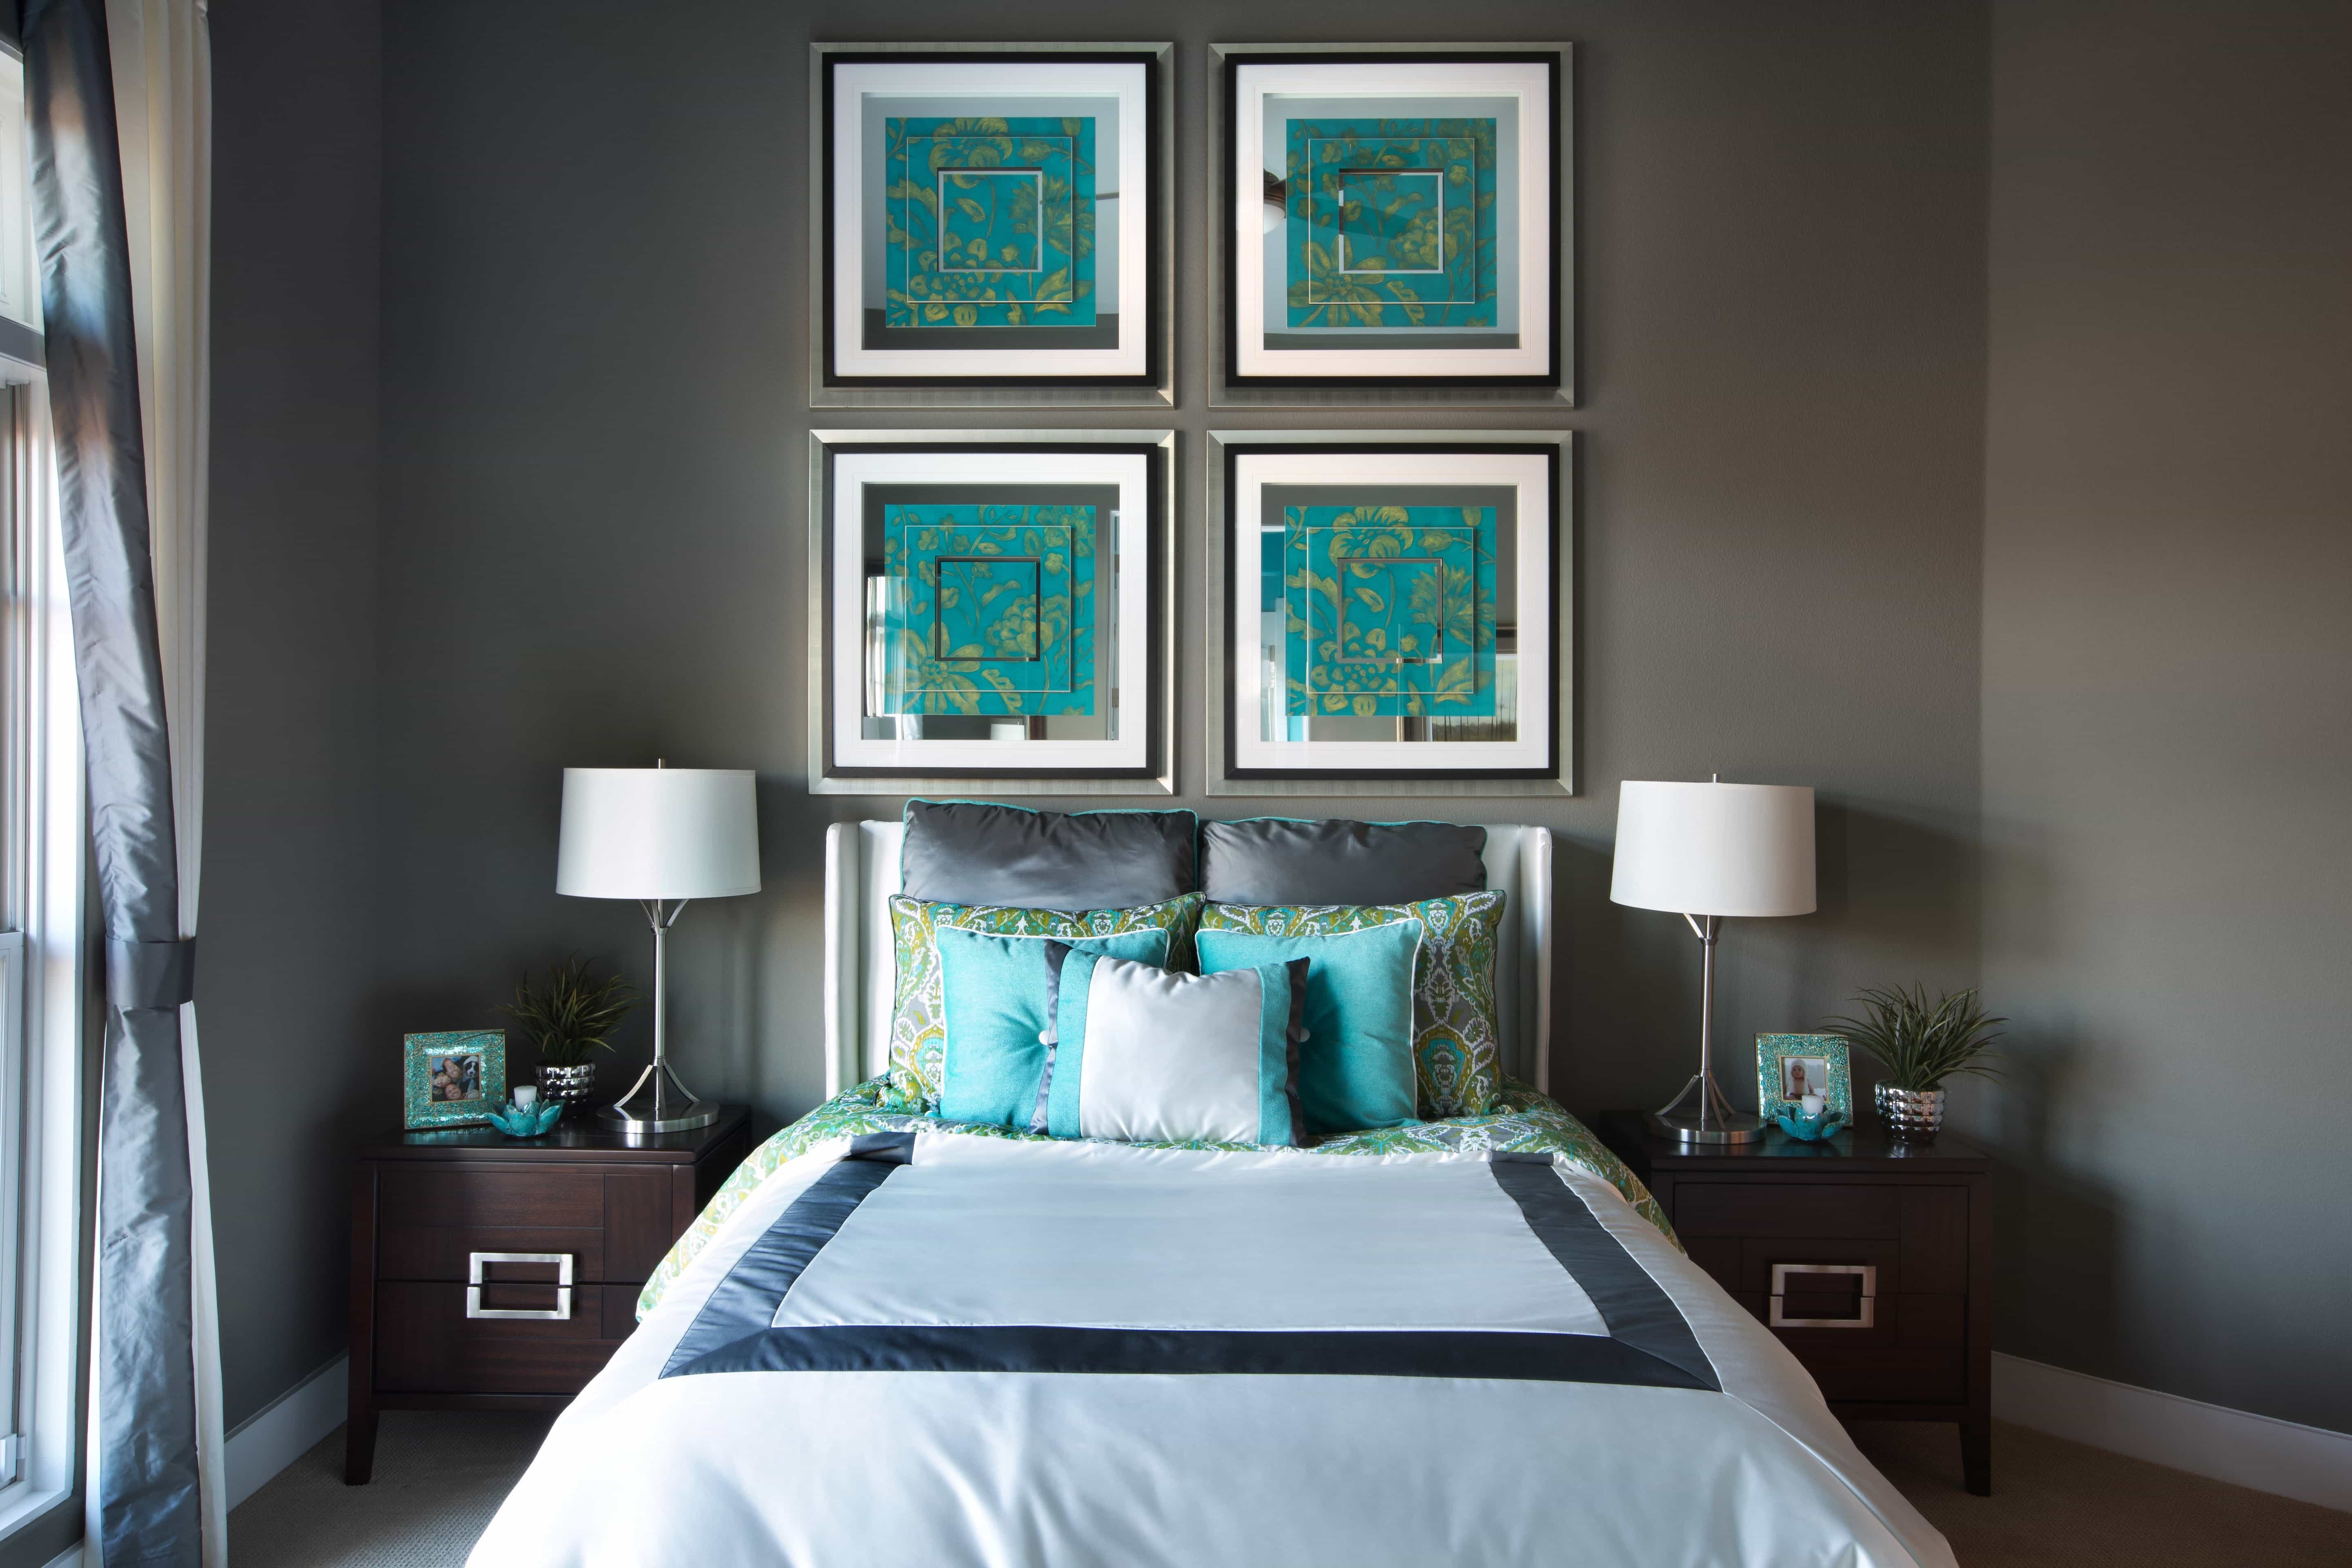 Charcoal Bedroom With Turquoise Accents And Asian Flair (Image 13 of 32)